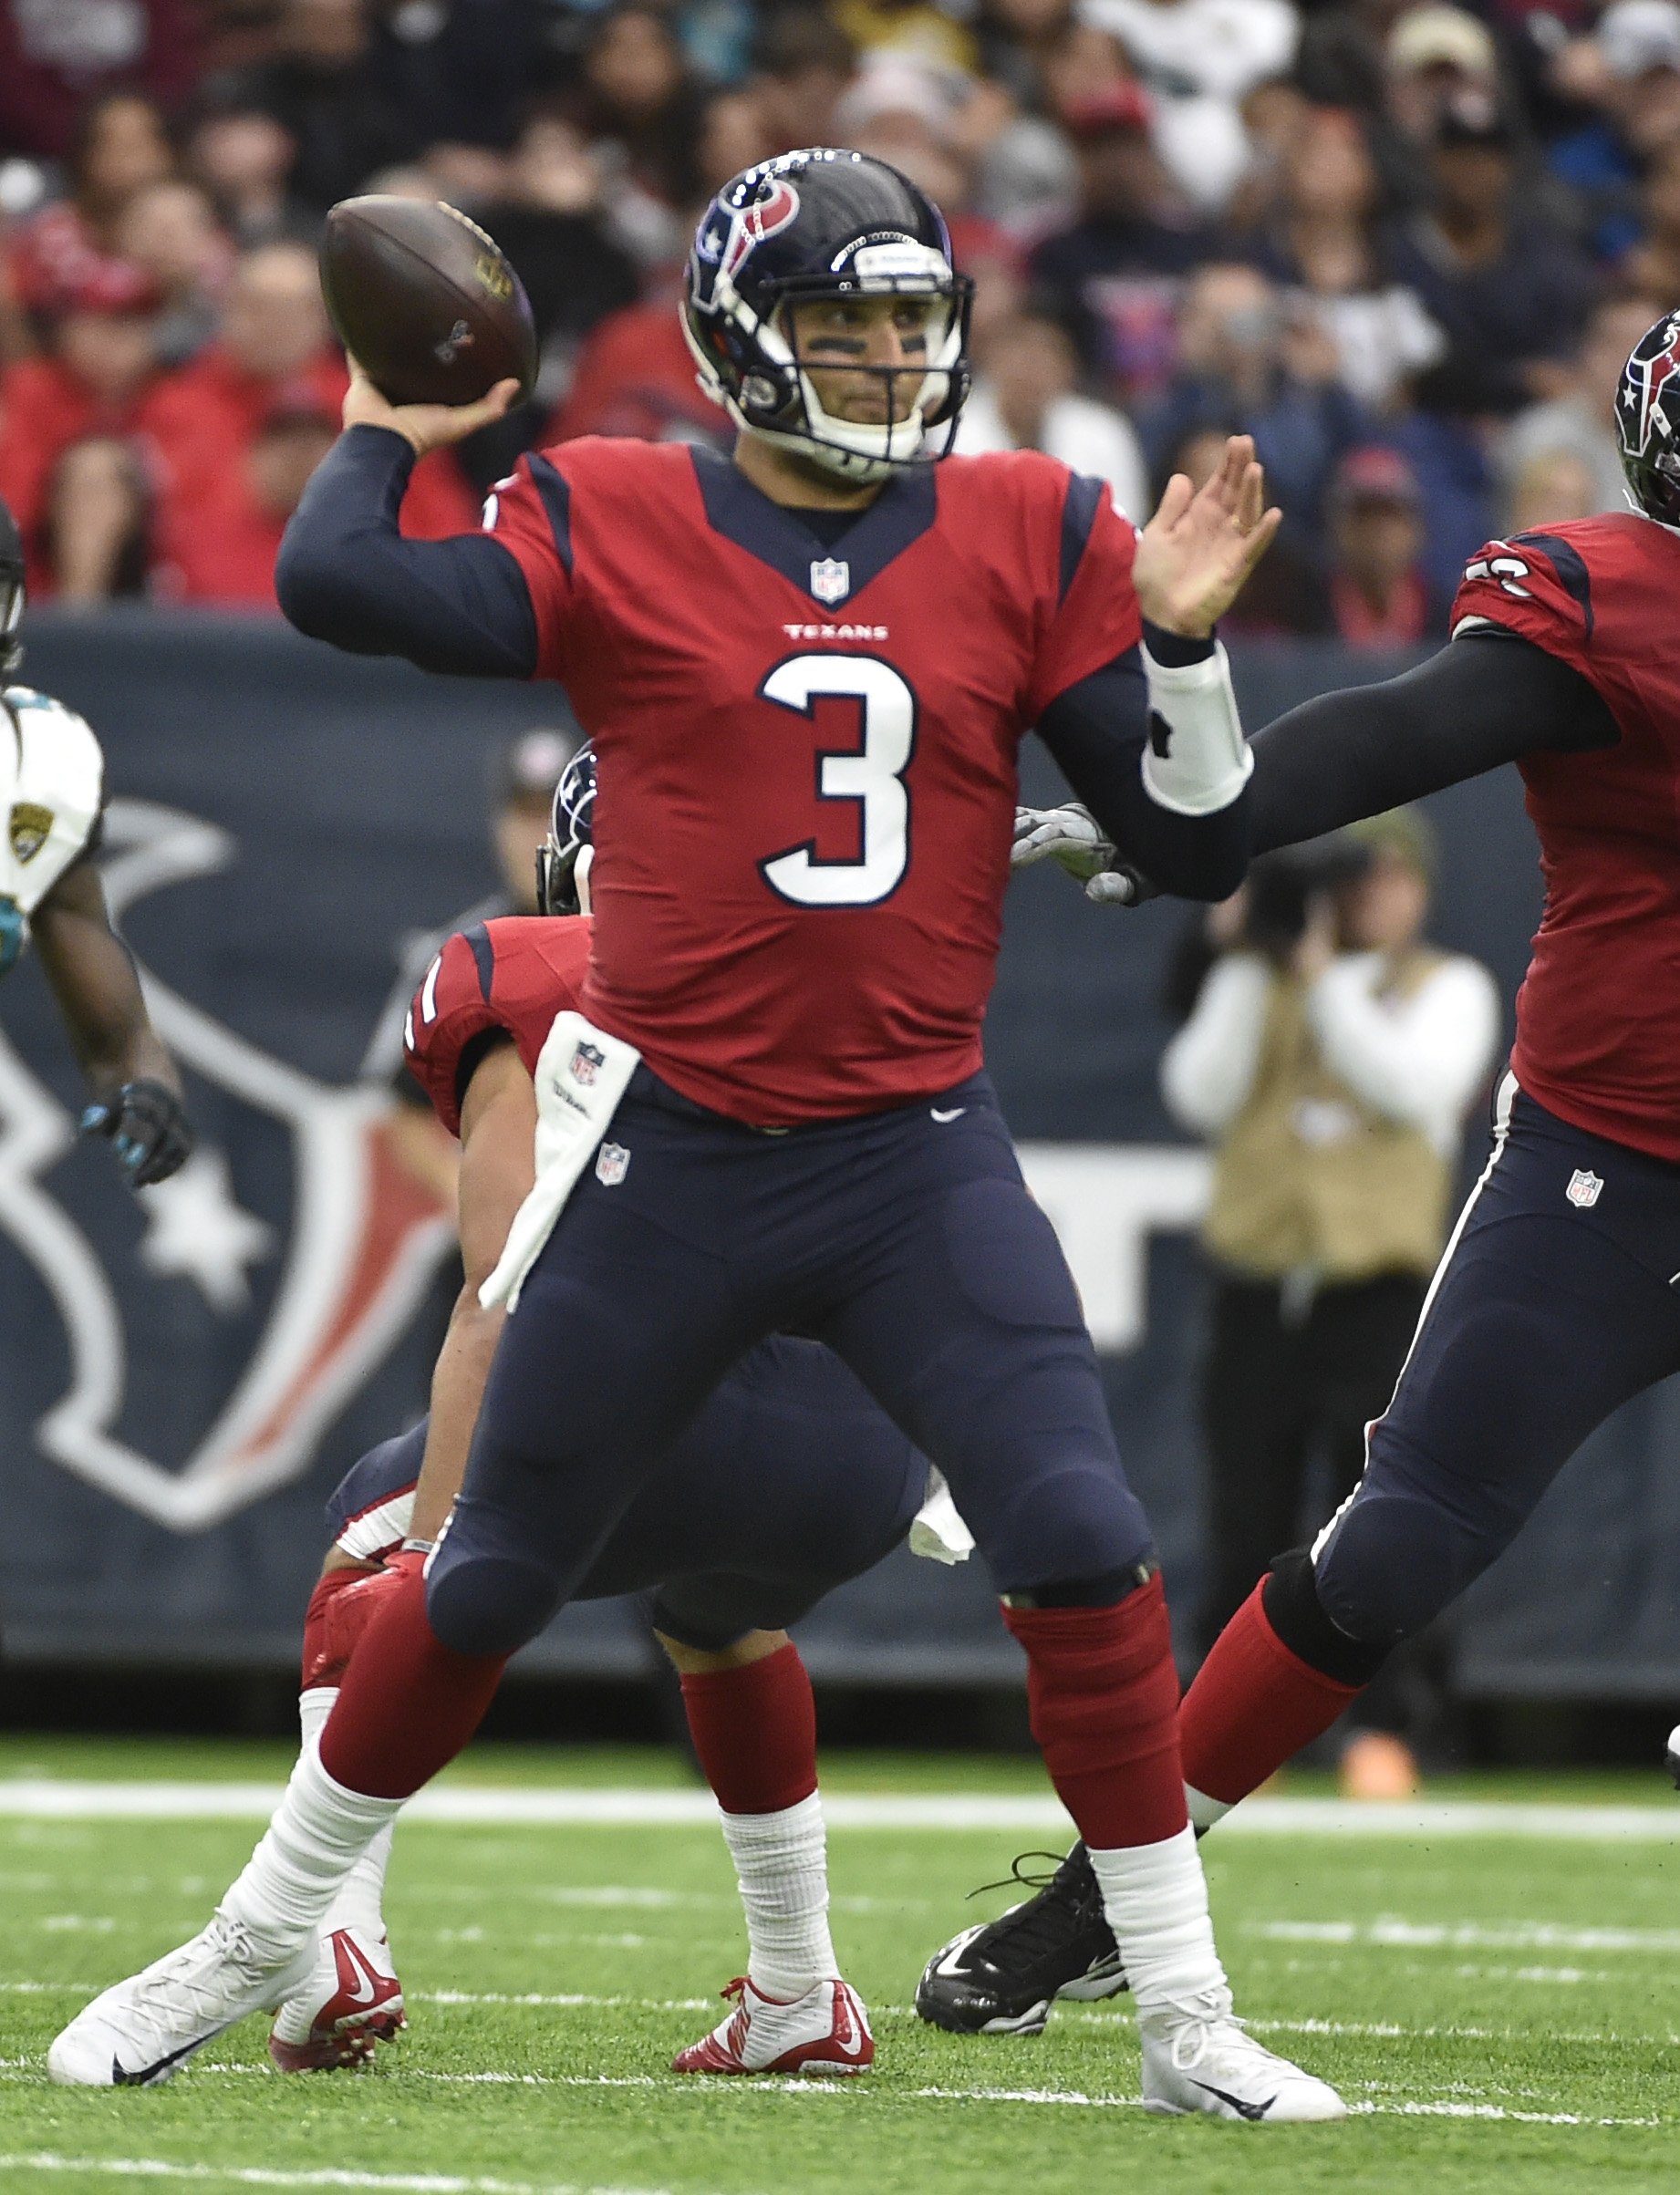 Houston Texans quarterback Tom Savage (3) passes against the Jacksonville Jaguars after starter Brock Osweiler was pulled during the first half of an NFL football game Sunday, Dec. 18, 2016, in Houston. (AP Photo/Eric Christian Smith)